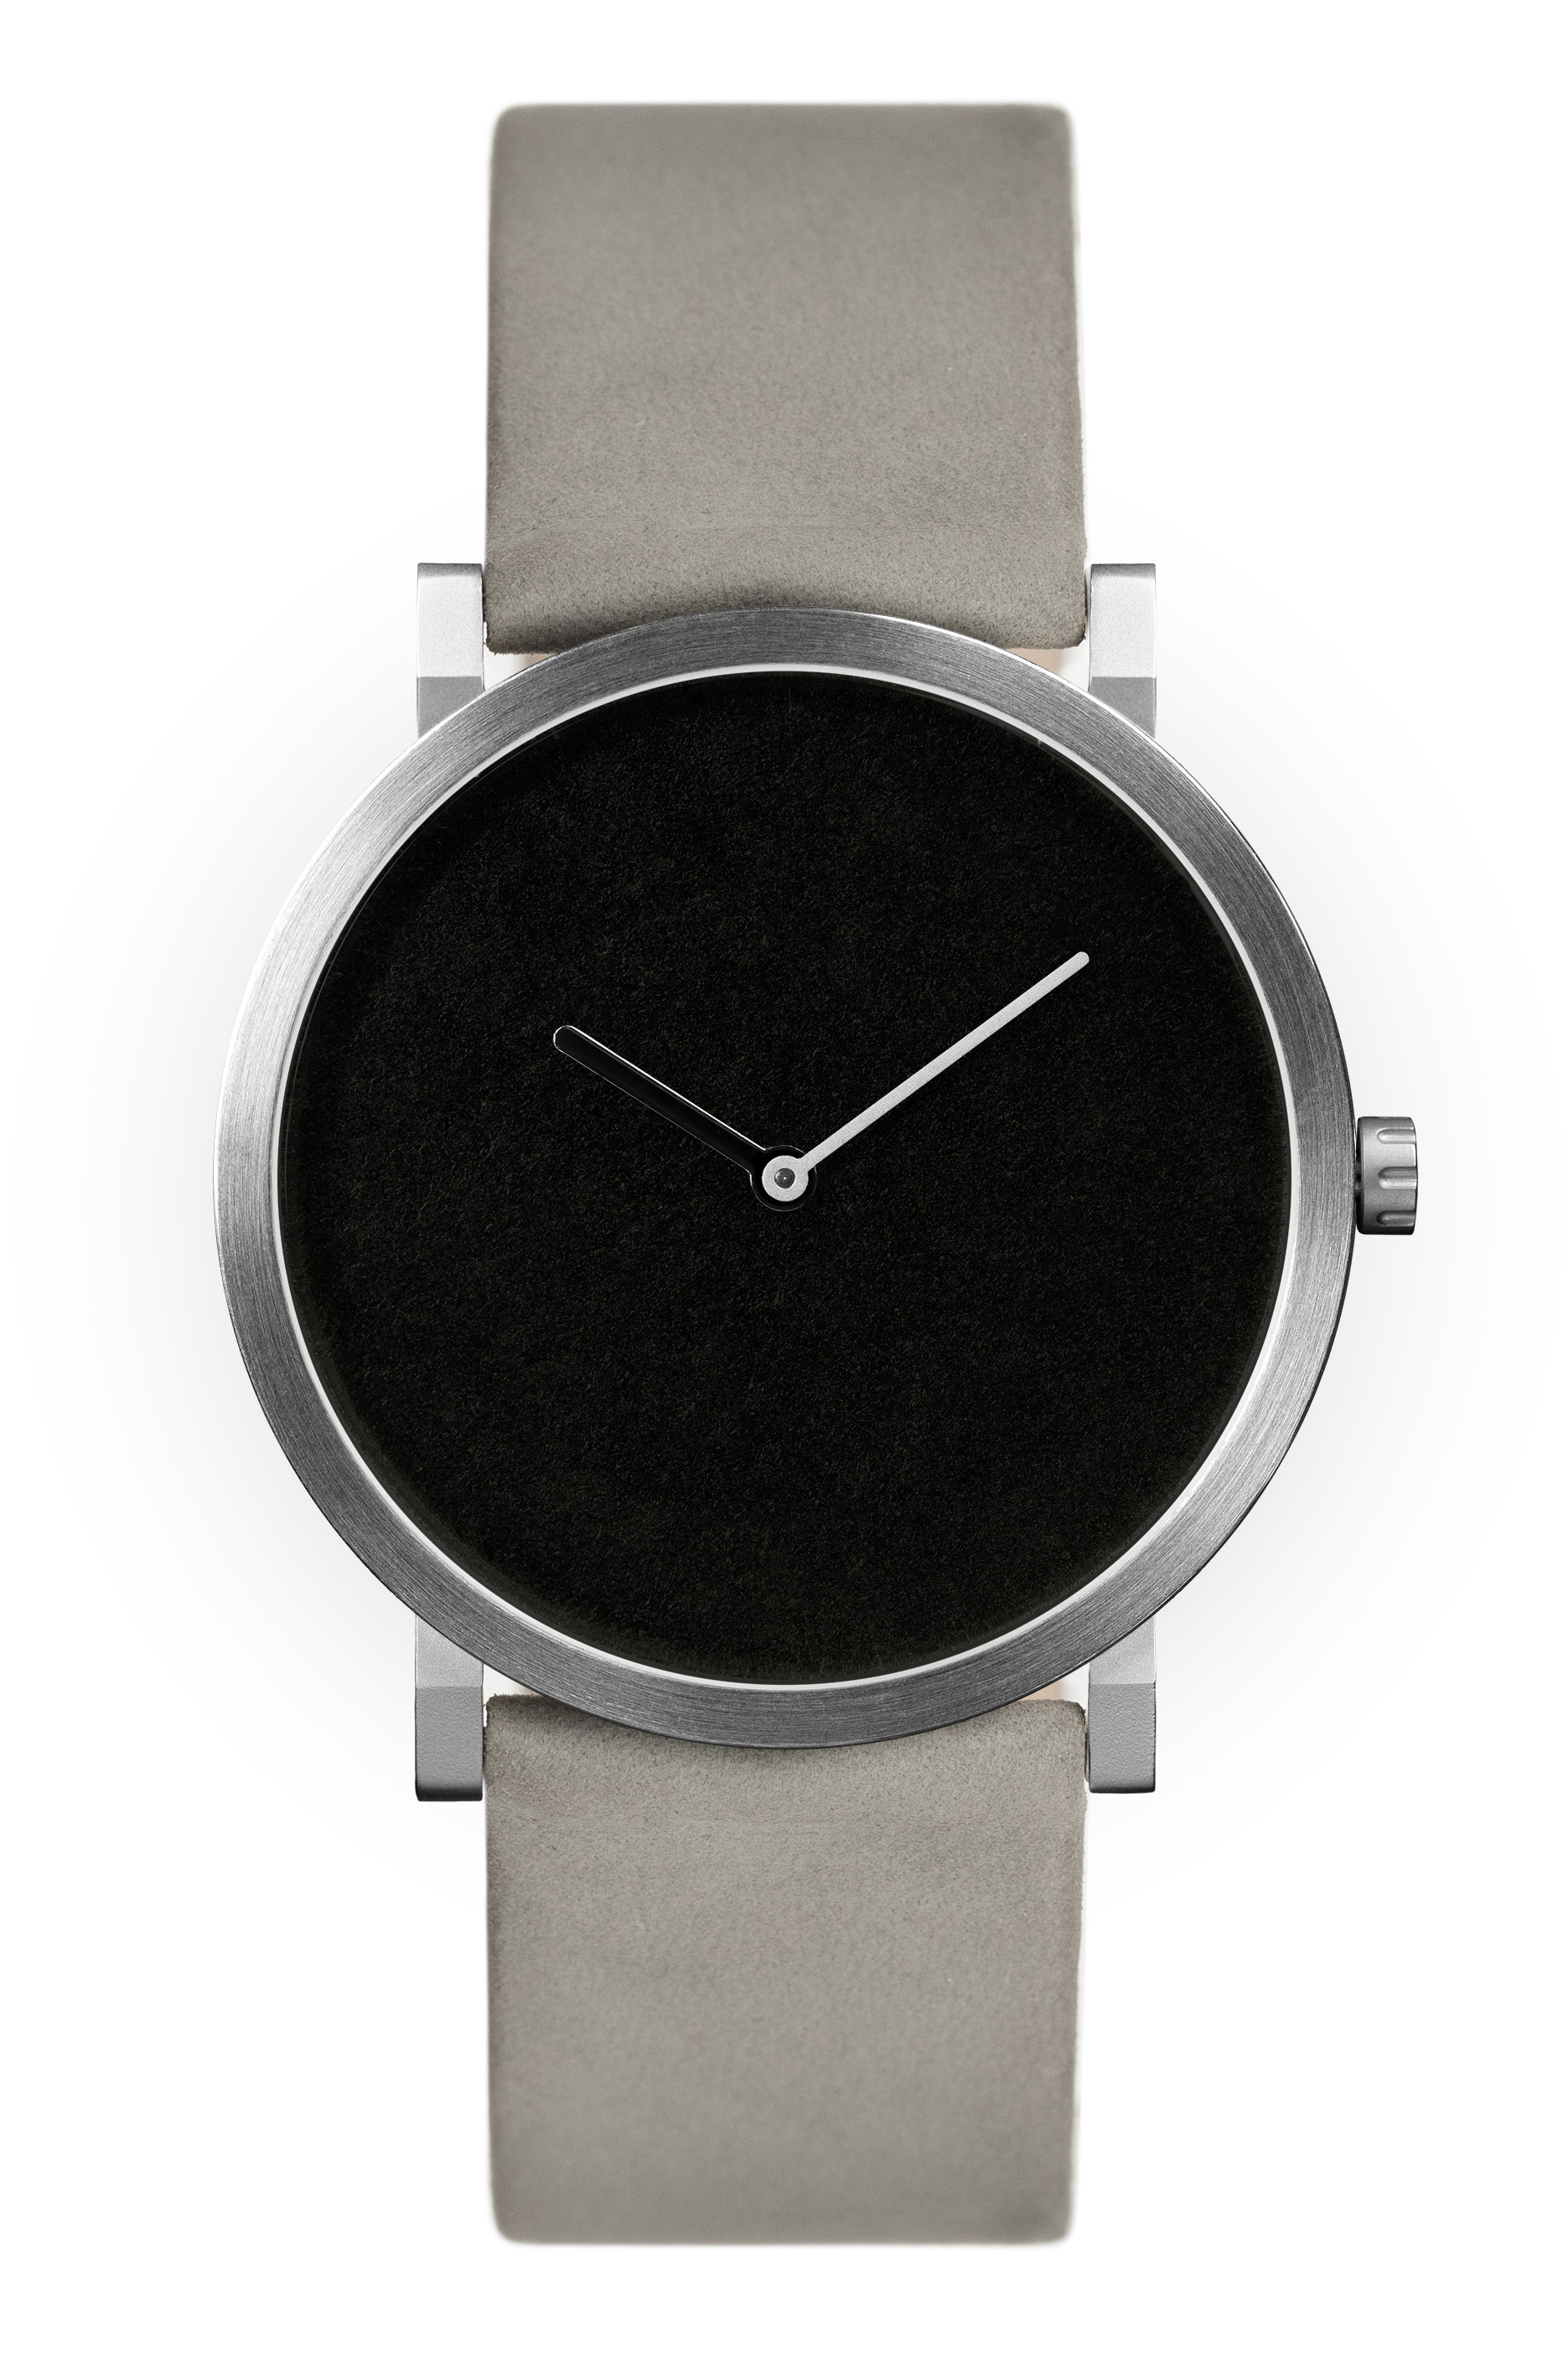 Copy of Copy of Matte Black with Beige Leather Strap